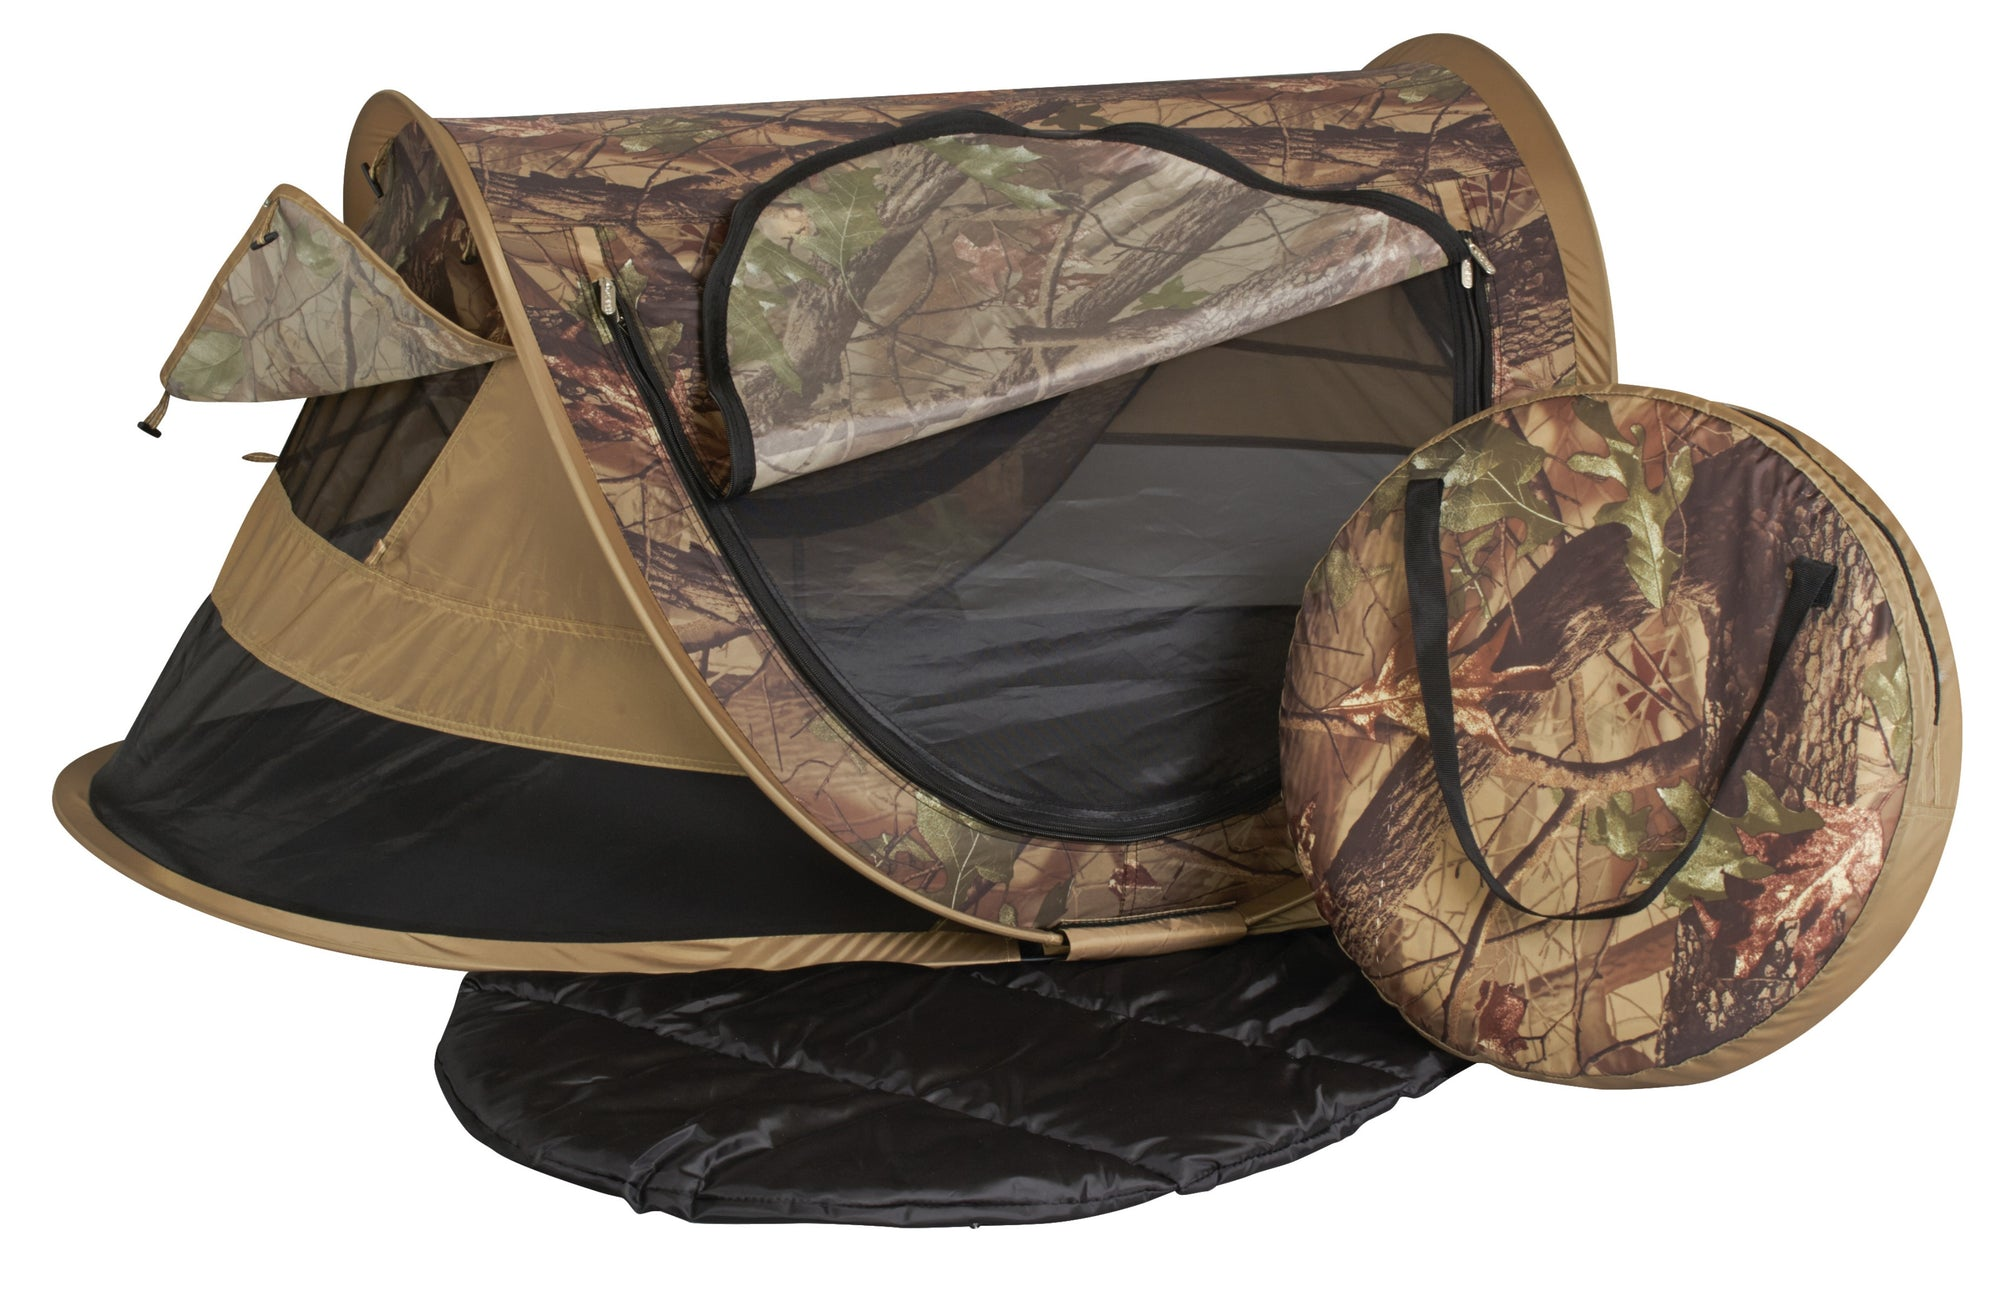 Carpa PeaPod Plus con Filtro UV - Camo